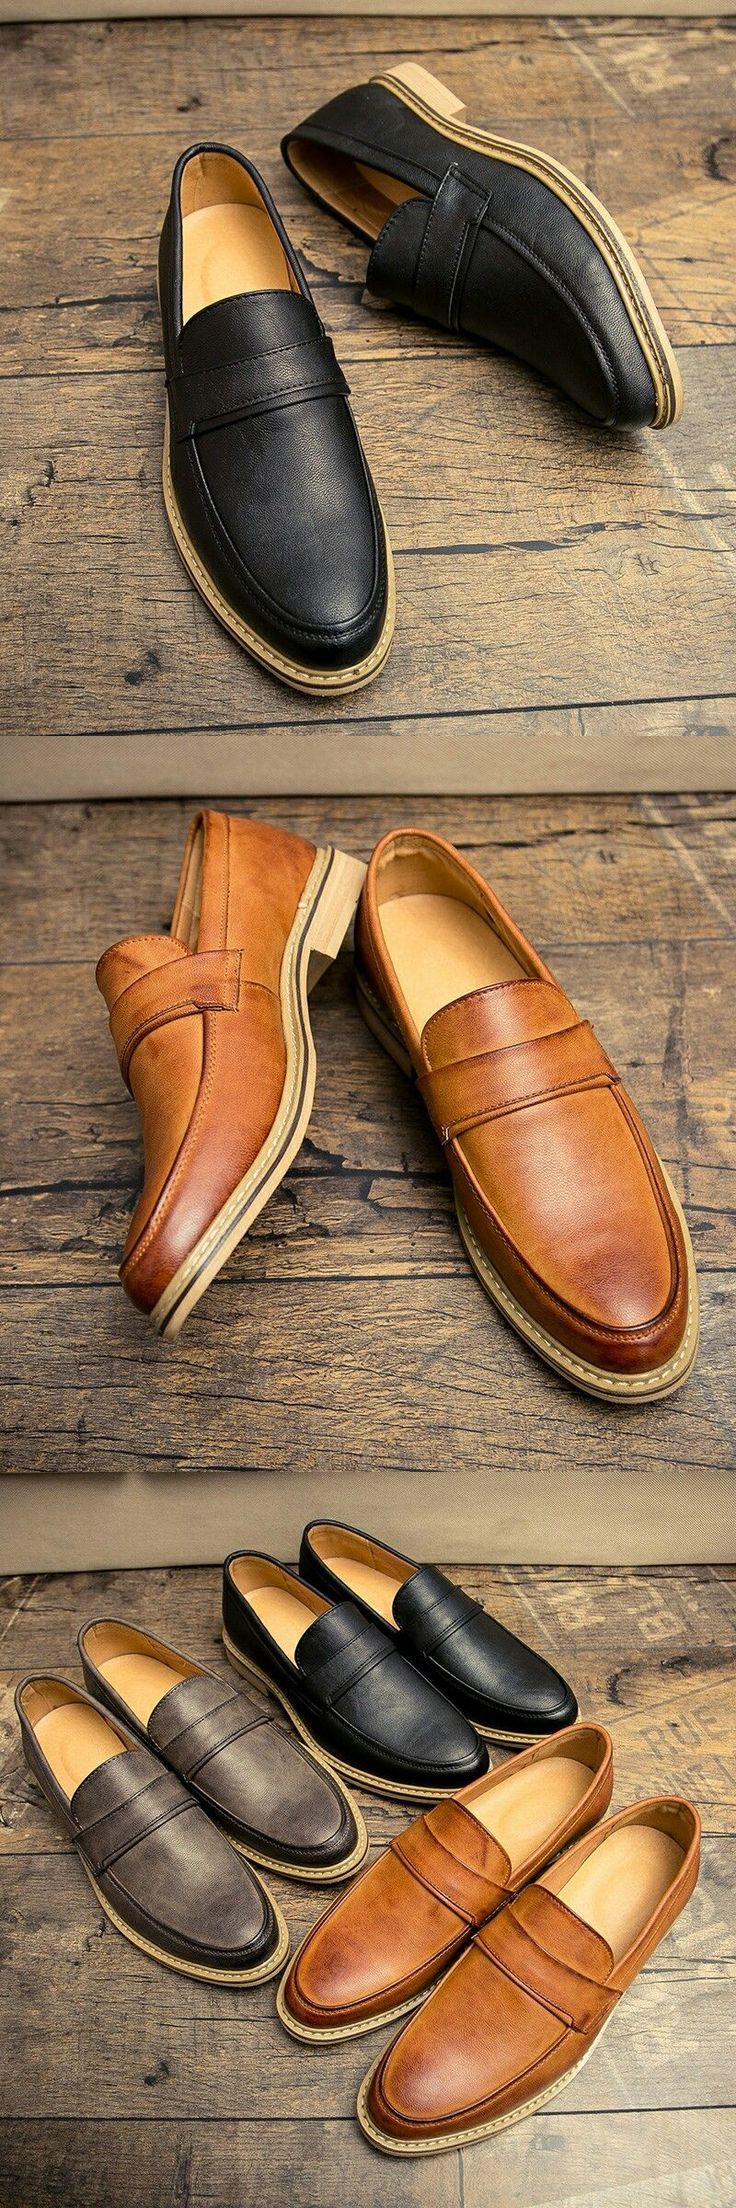 Antique Jewelry Shopping Things To Avoid When Making A Selection - Men Dress Shoe…